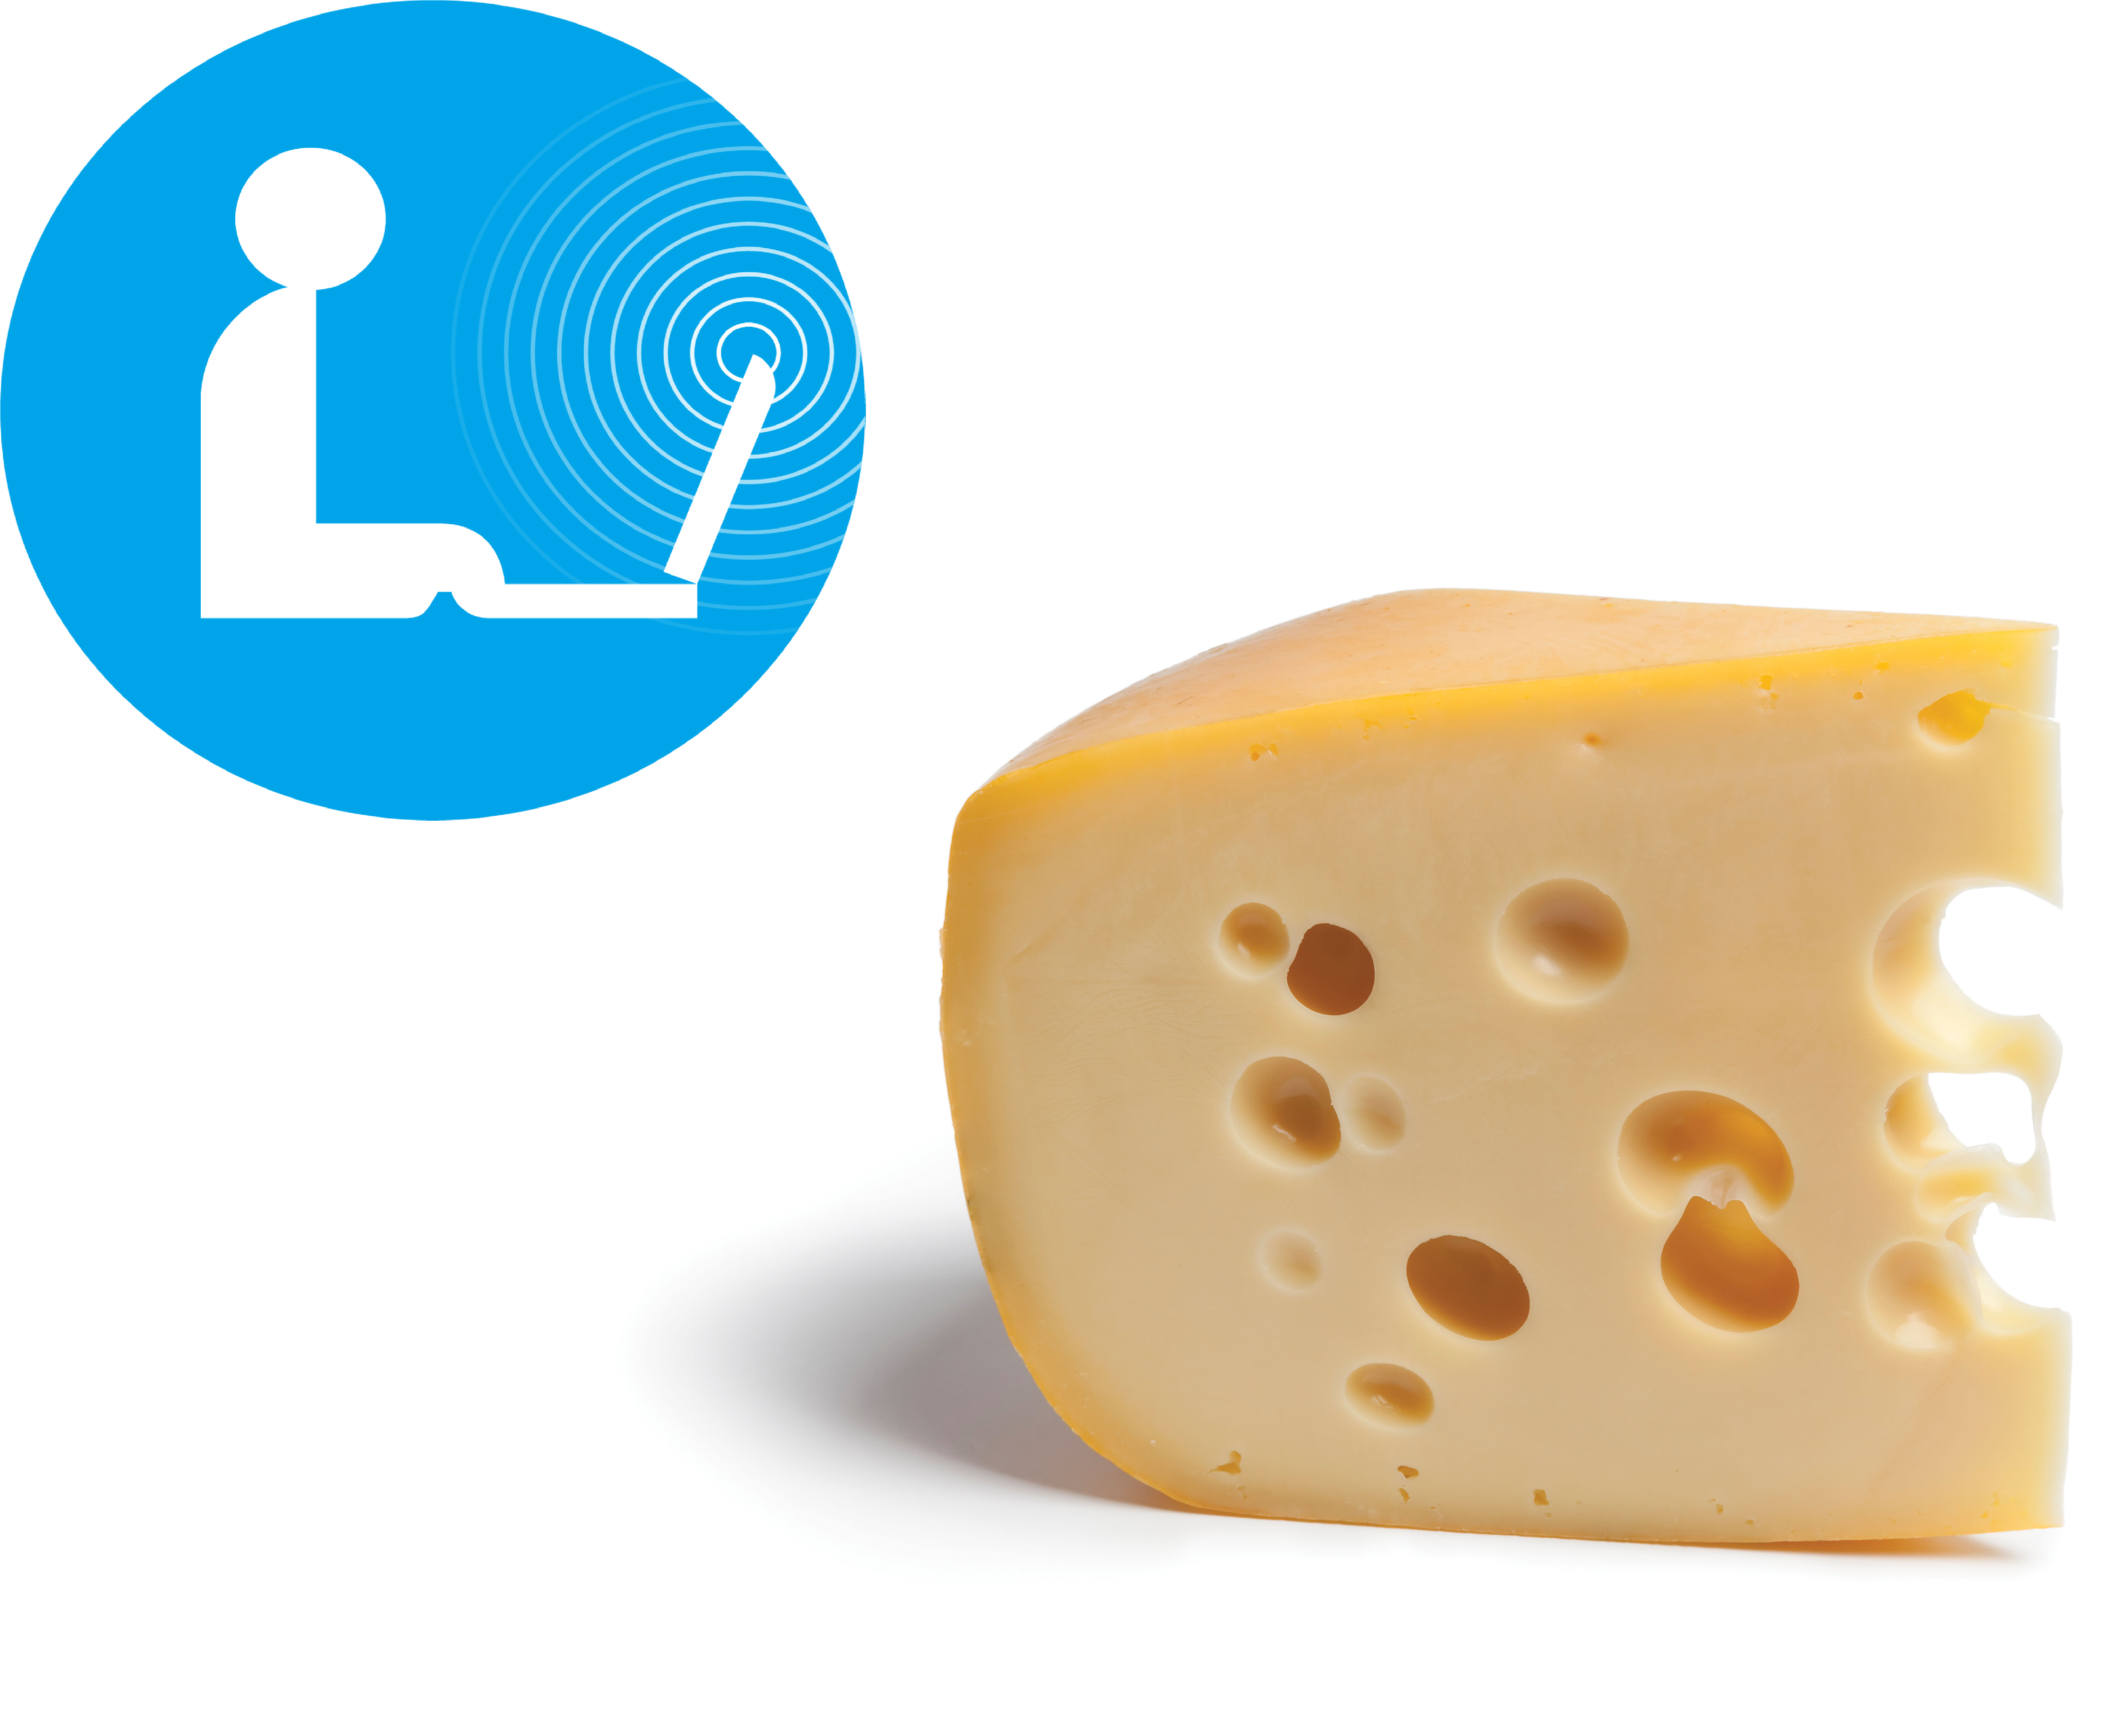 uk cheese industry analysis This analysis of the new zealand dairy sector forms a part of the wider food   jv formed to market lurpak (arla) and anchor (fonterra) butter to the uk.